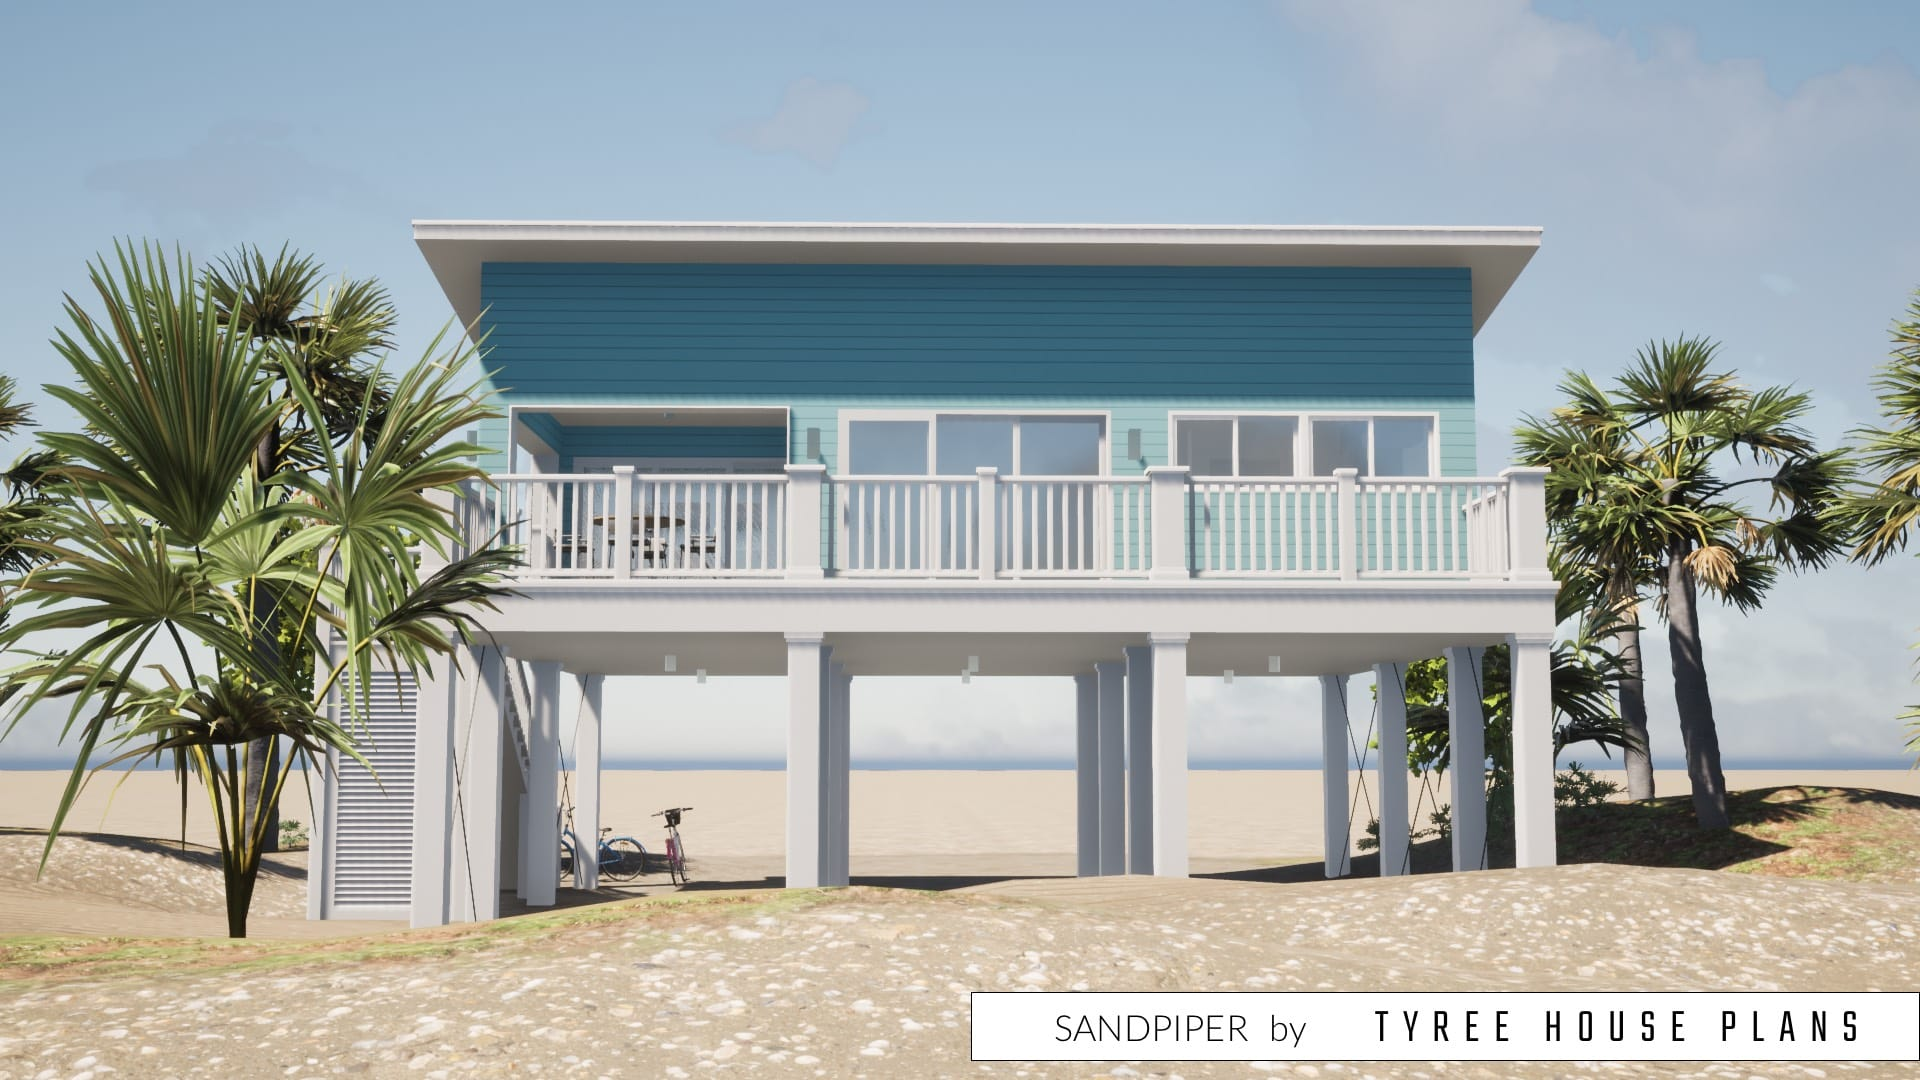 Sandpiper House Plan by Tyree House Plans